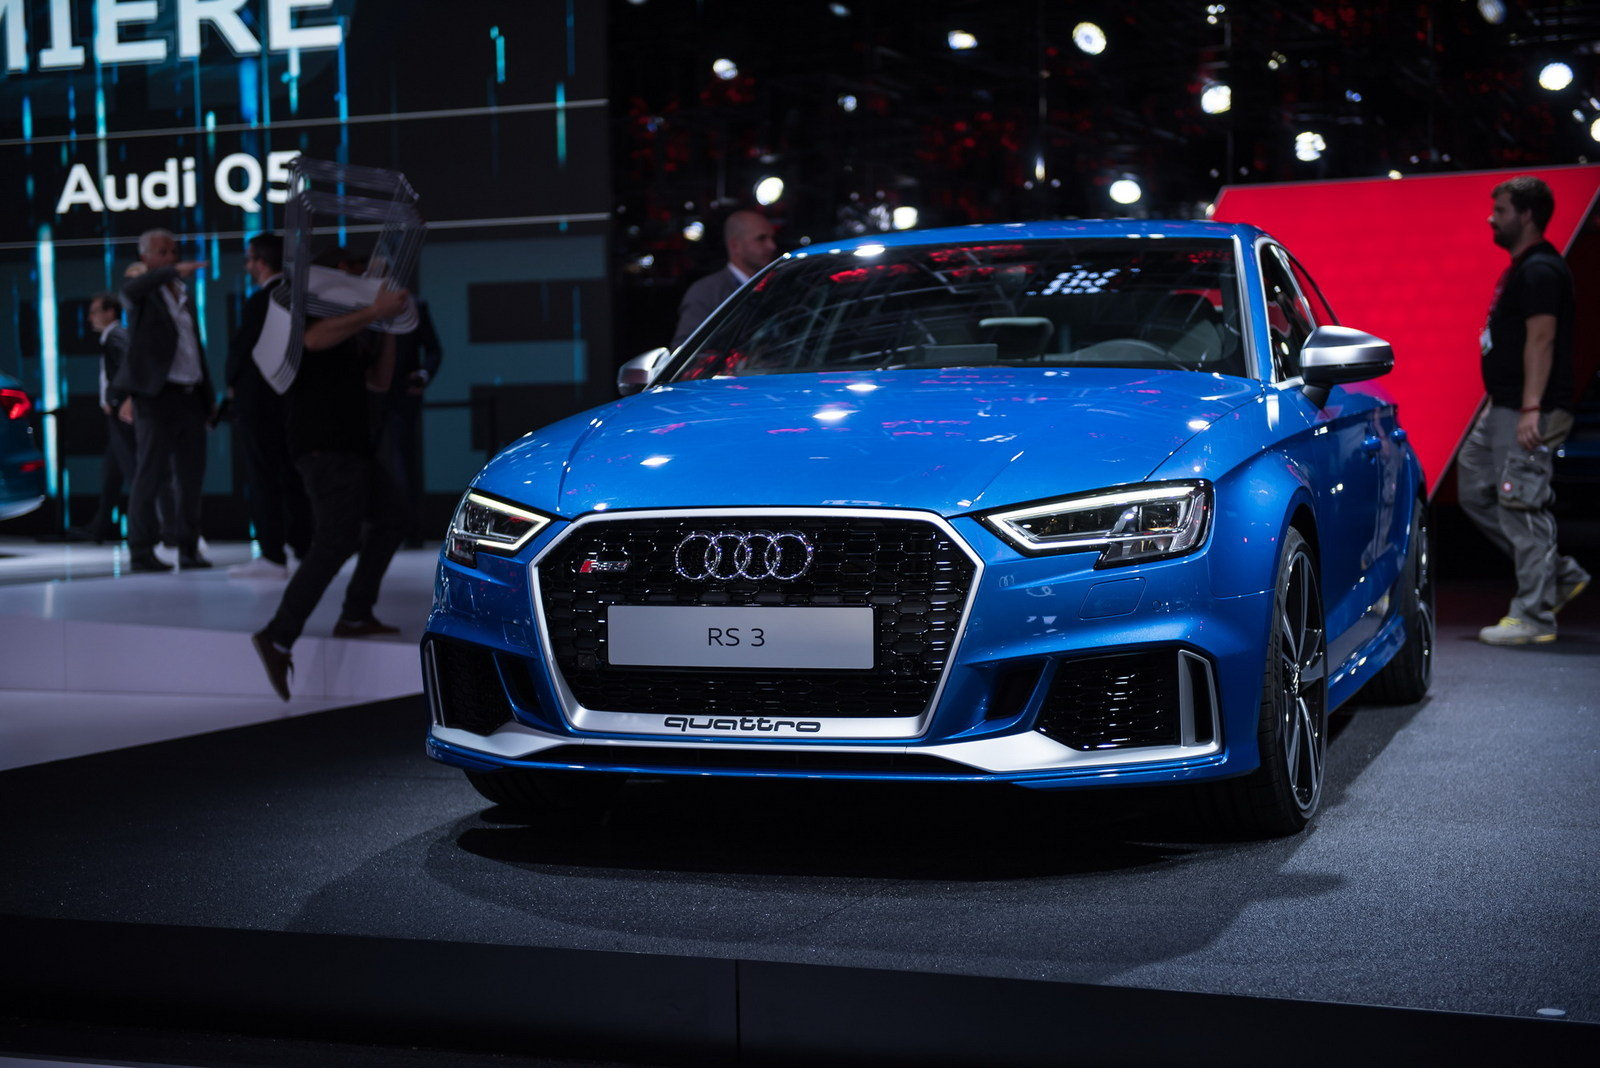 2018 audi rs3 sedan picture 690842 car review top speed. Black Bedroom Furniture Sets. Home Design Ideas